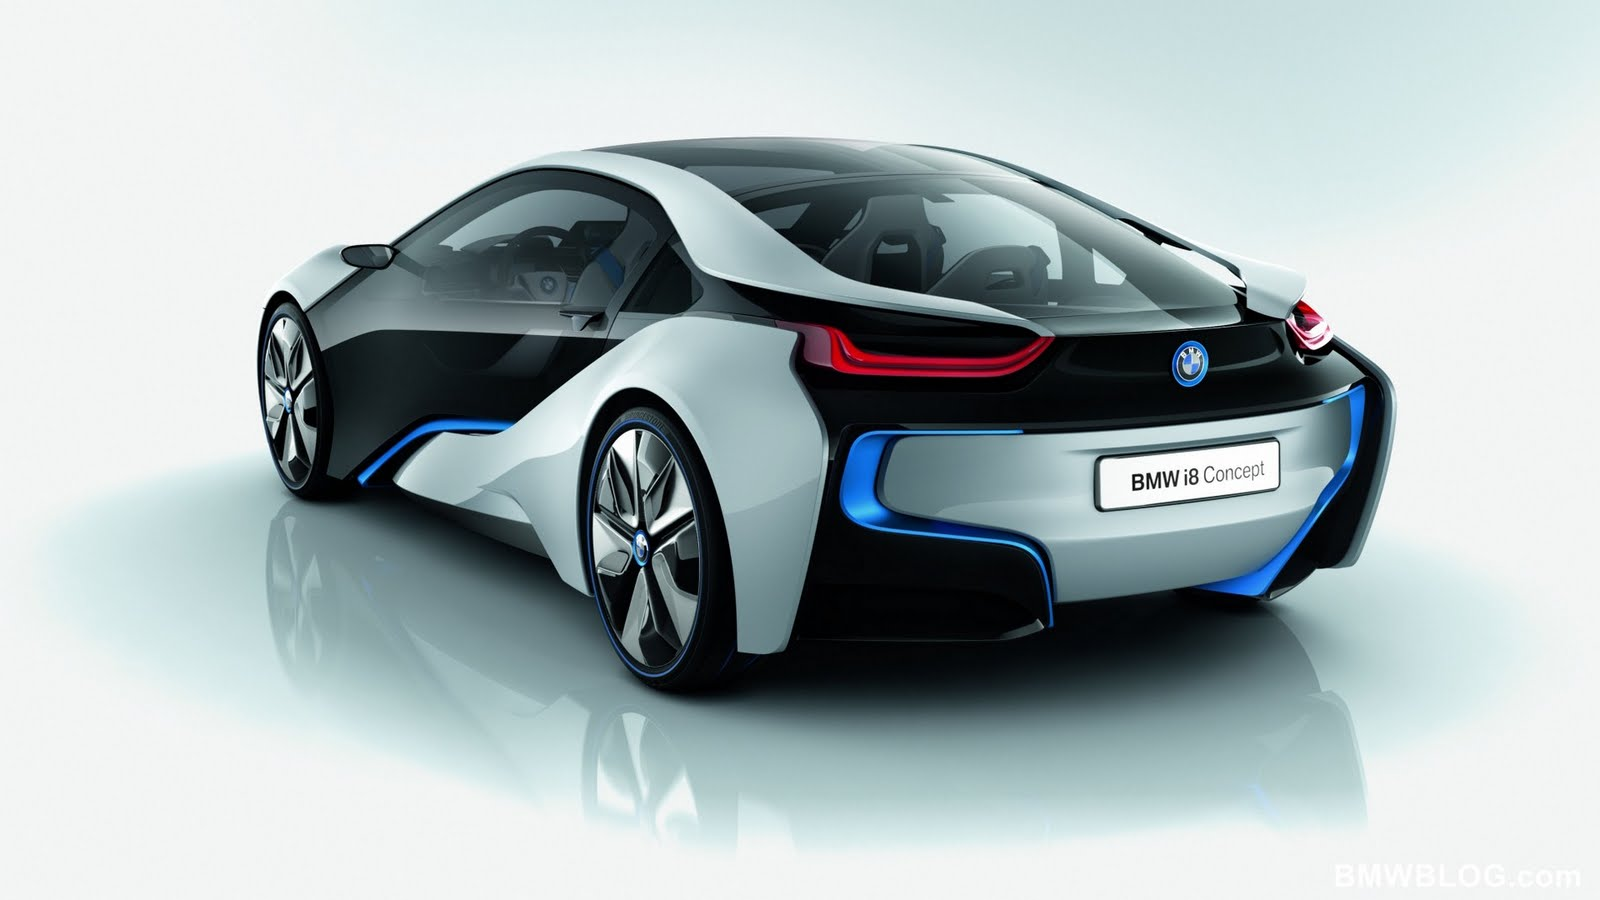 2013 Bmw I8 Concept Auto Car Best Car News And Reviews